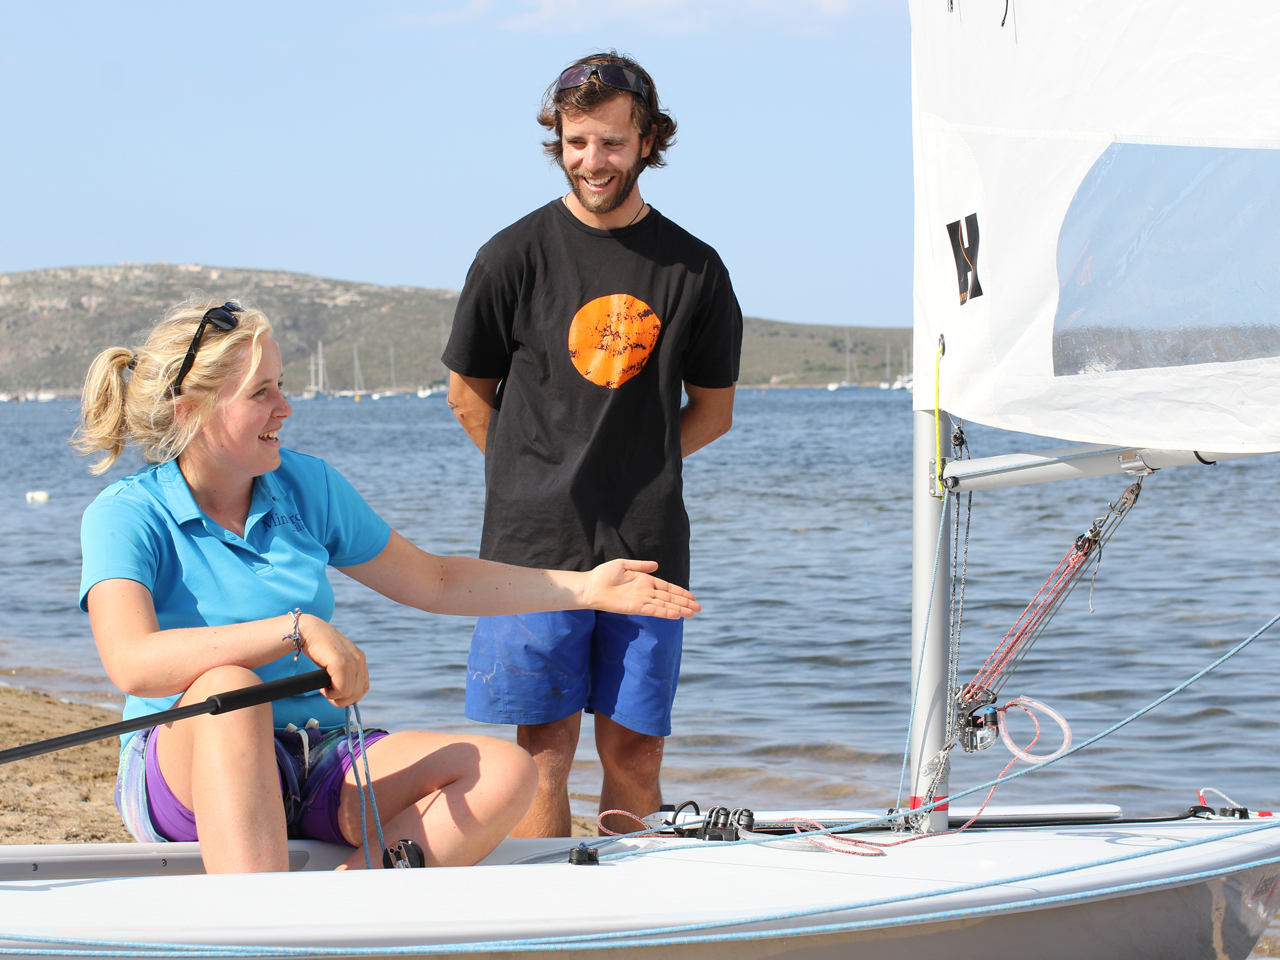 Learn to Laser Sail in Menorca